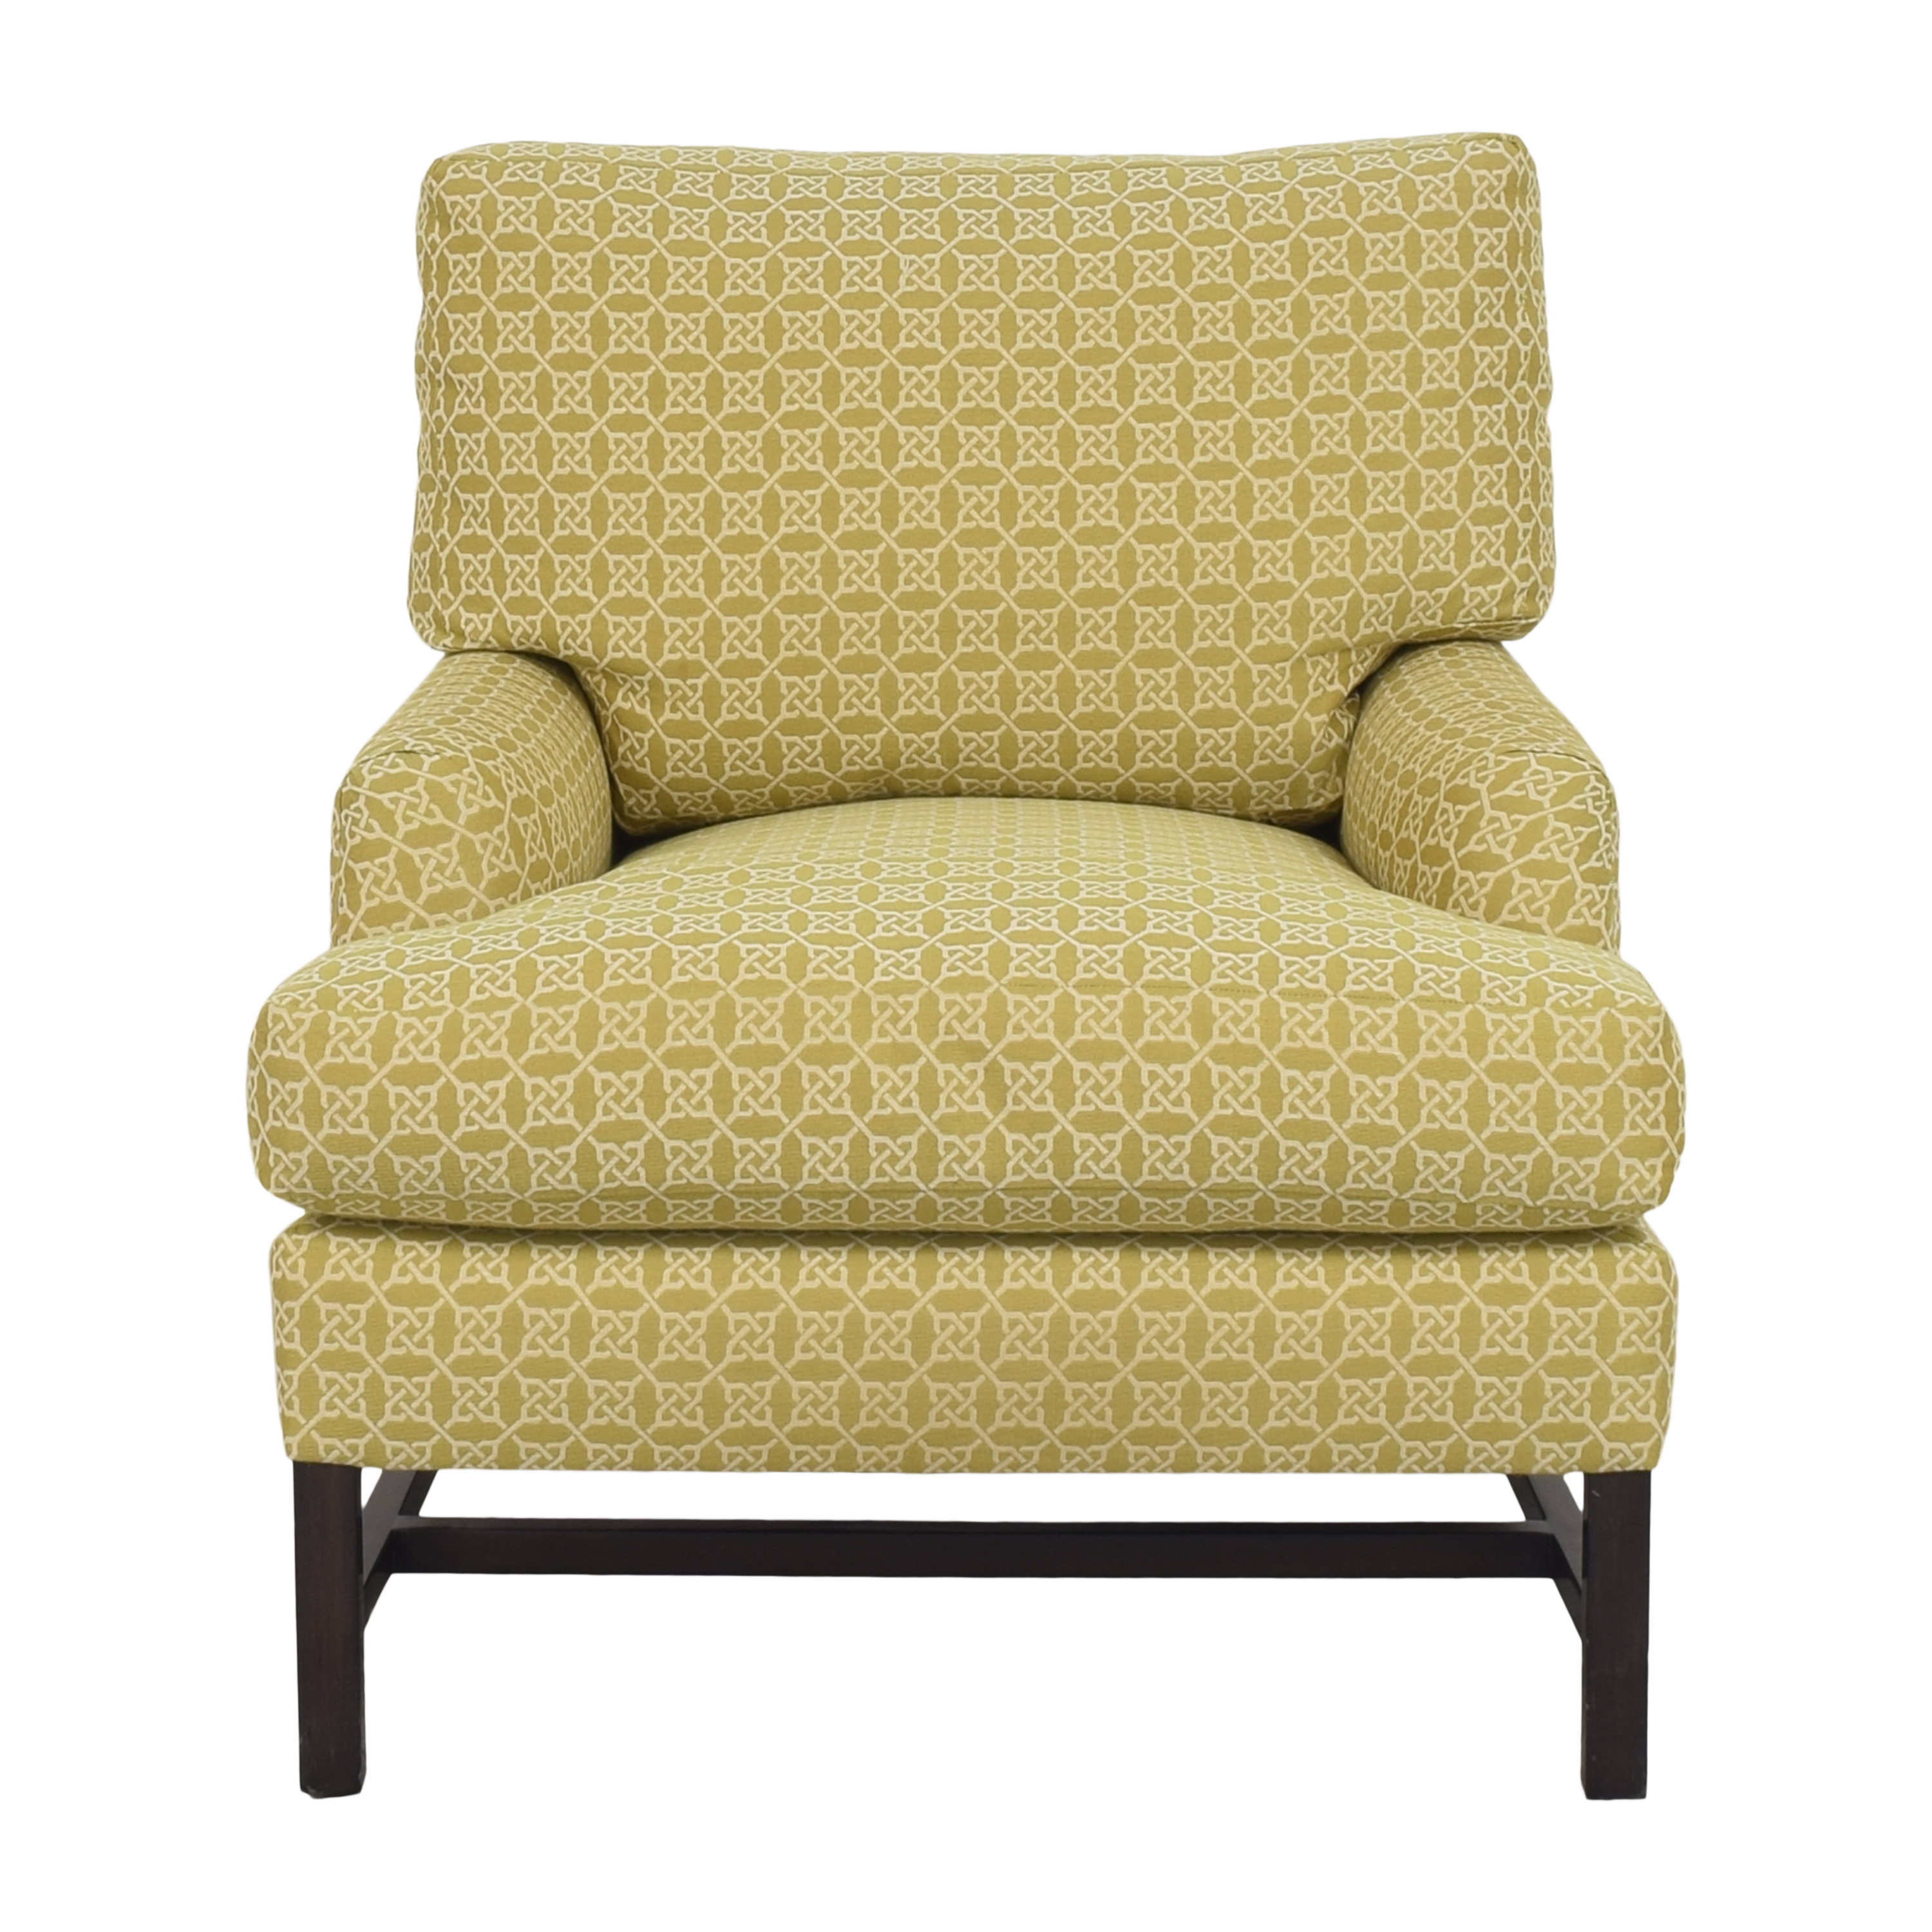 A Rudin A Rudin No 681 Chair and Ottoman Accent Chairs